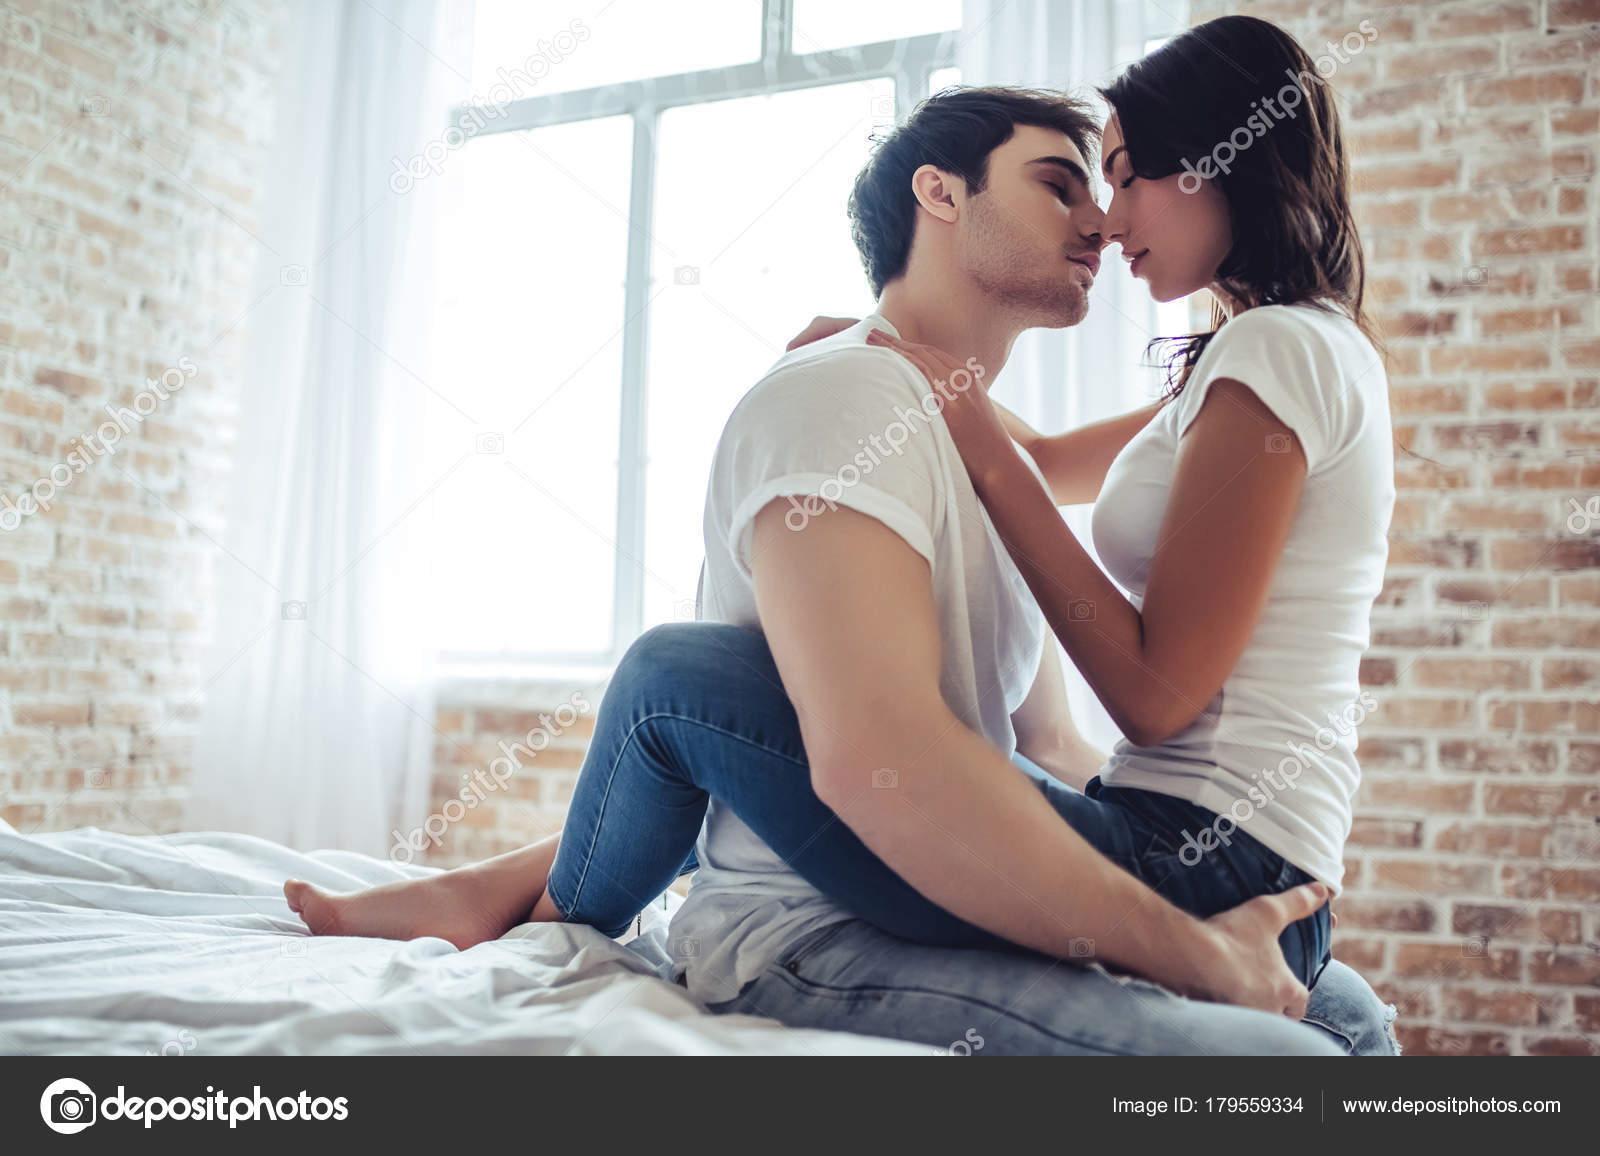 Couple In Bedroom Stock Photo Image By C 4pmphoto Gmail Com 179559334